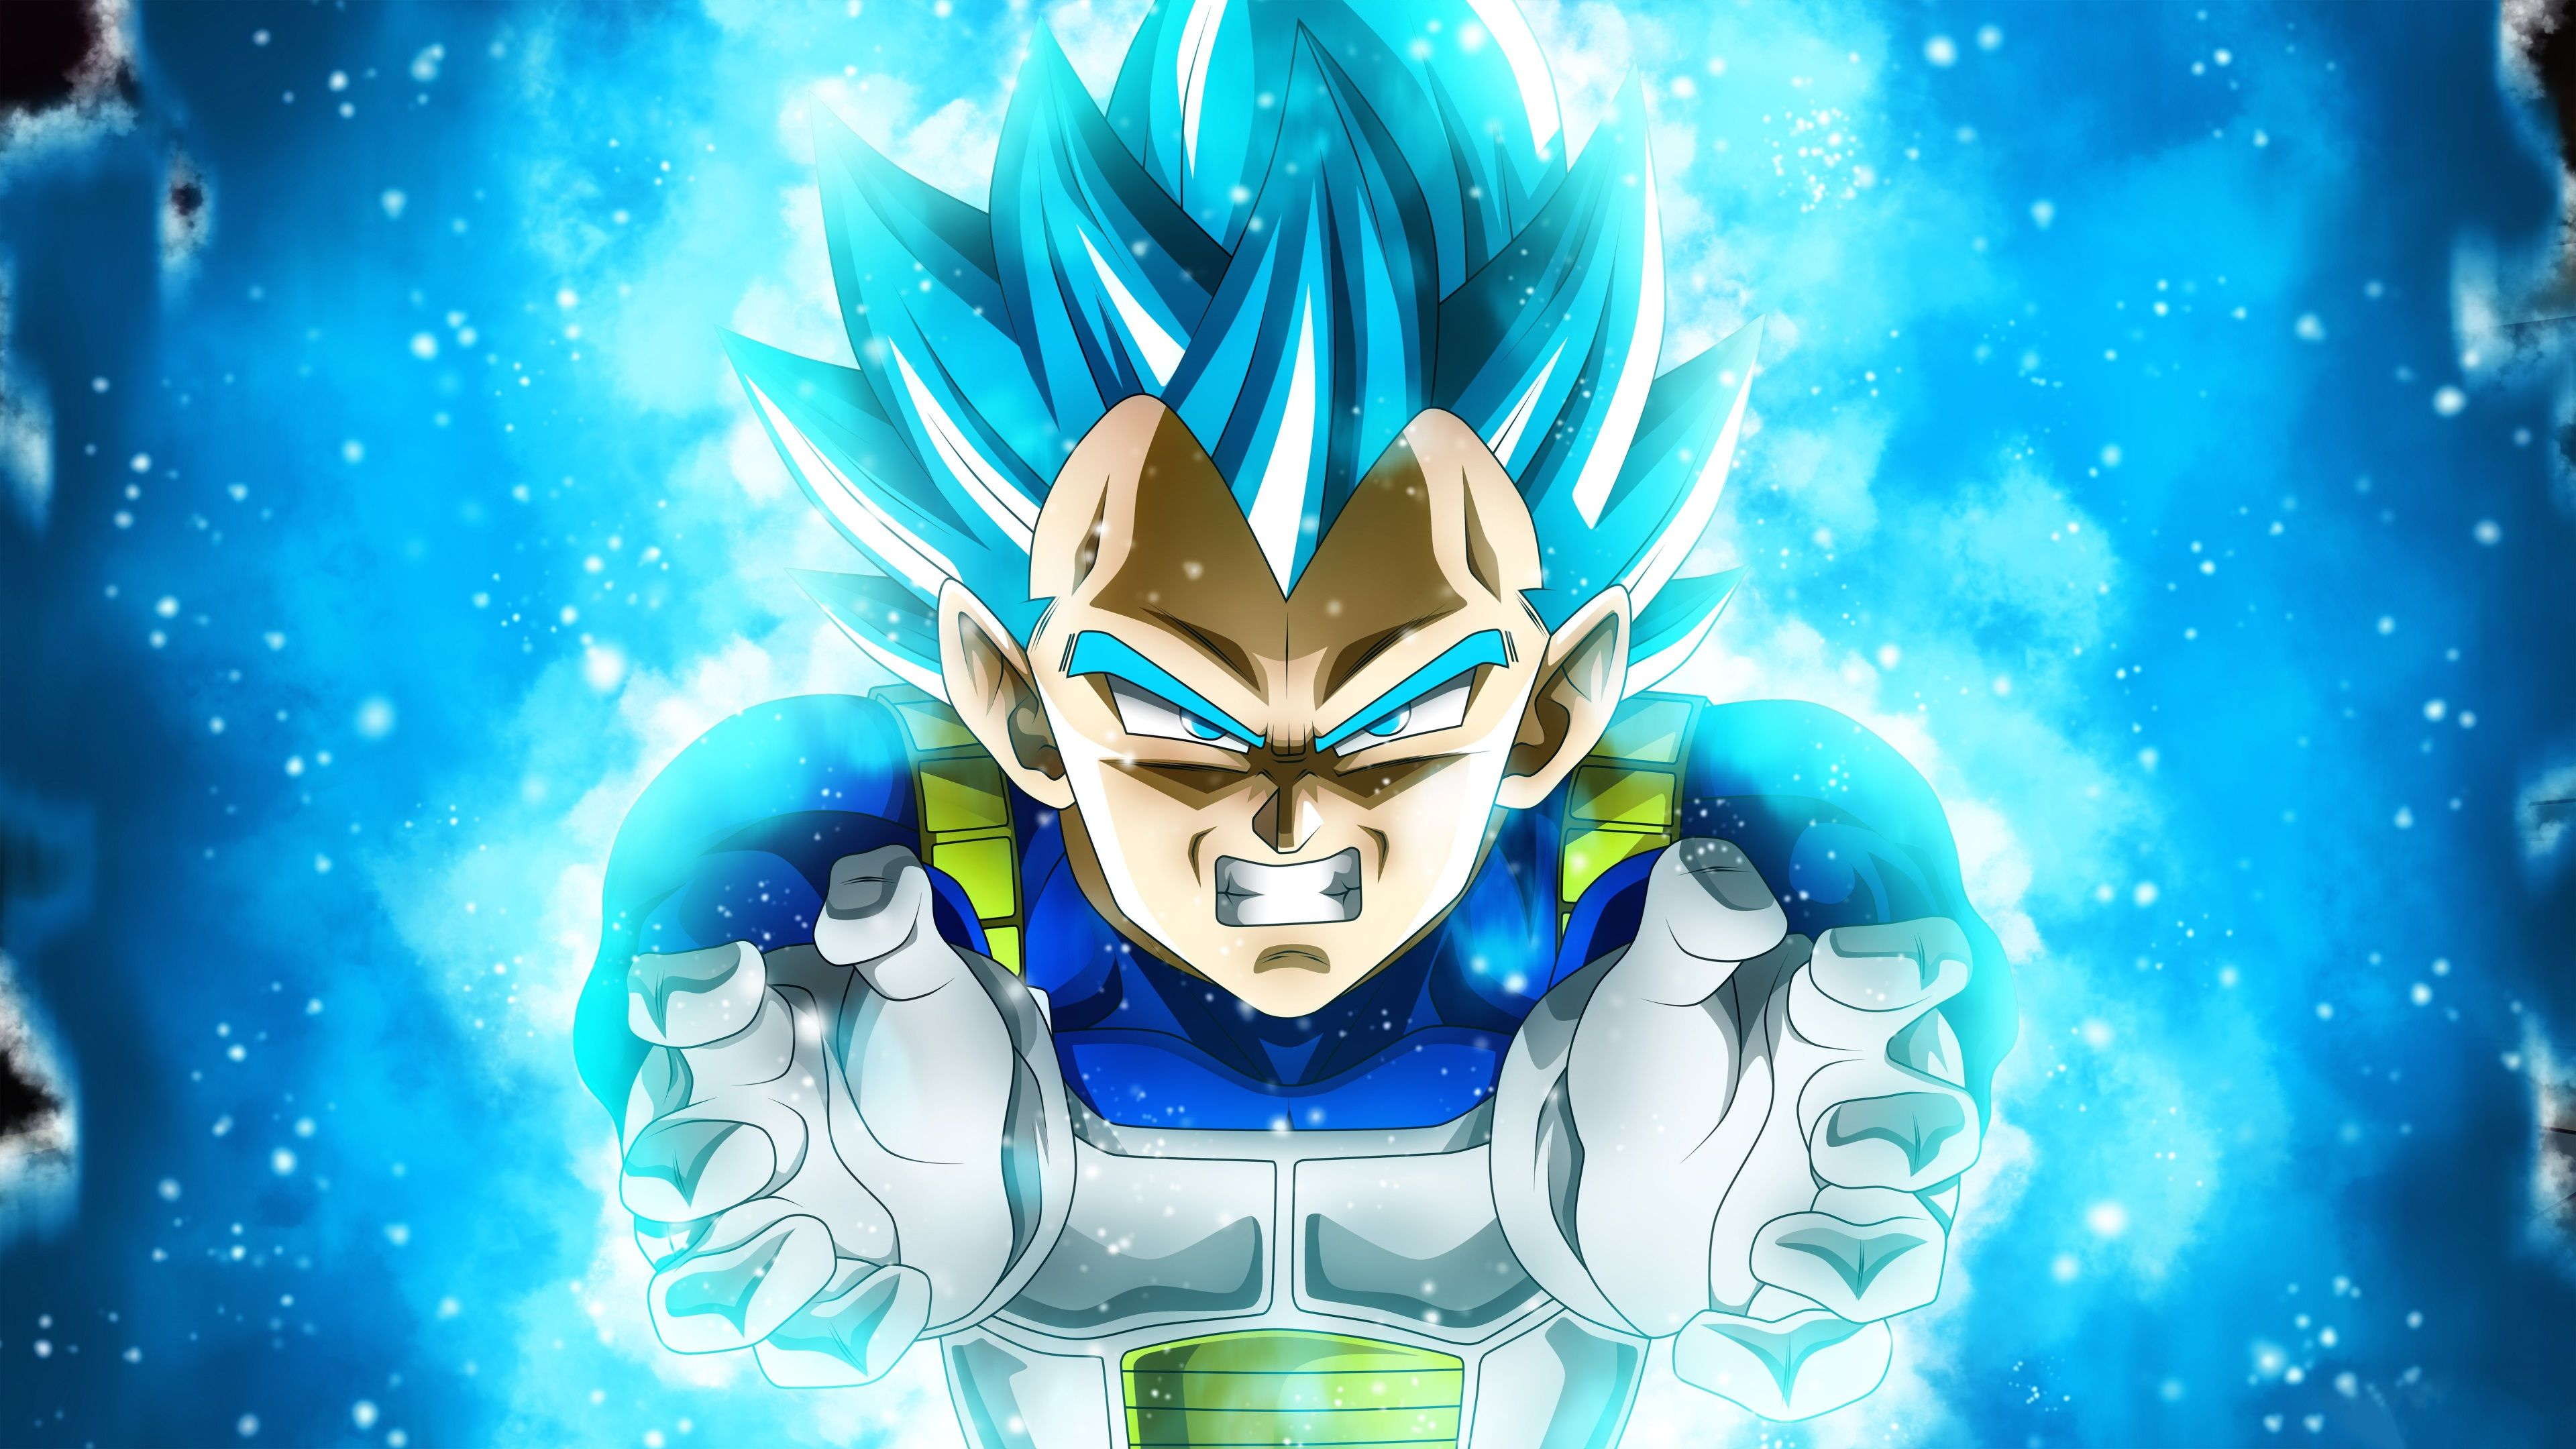 3840x2160 Dragon Ball Super 4k Free Wallpaper Photo Download Dragon Ball Super Wallpapers Dragon Ball Wallpapers Goku Wallpaper